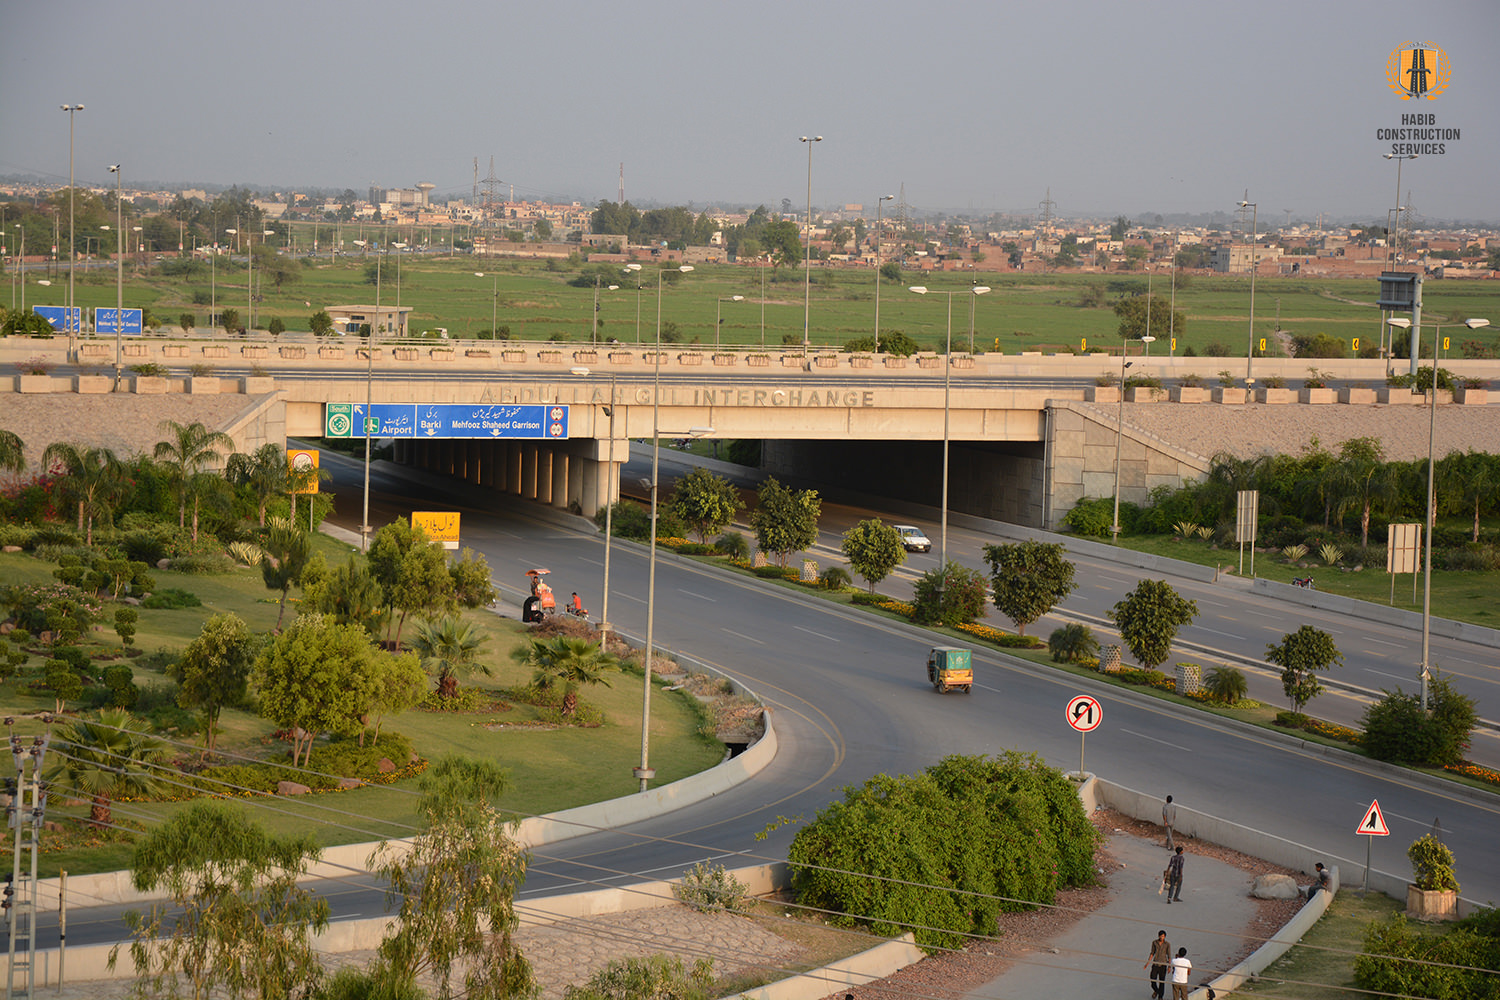 LAHORE RING ROAD ABDULLAH GUL INTERCHANGE